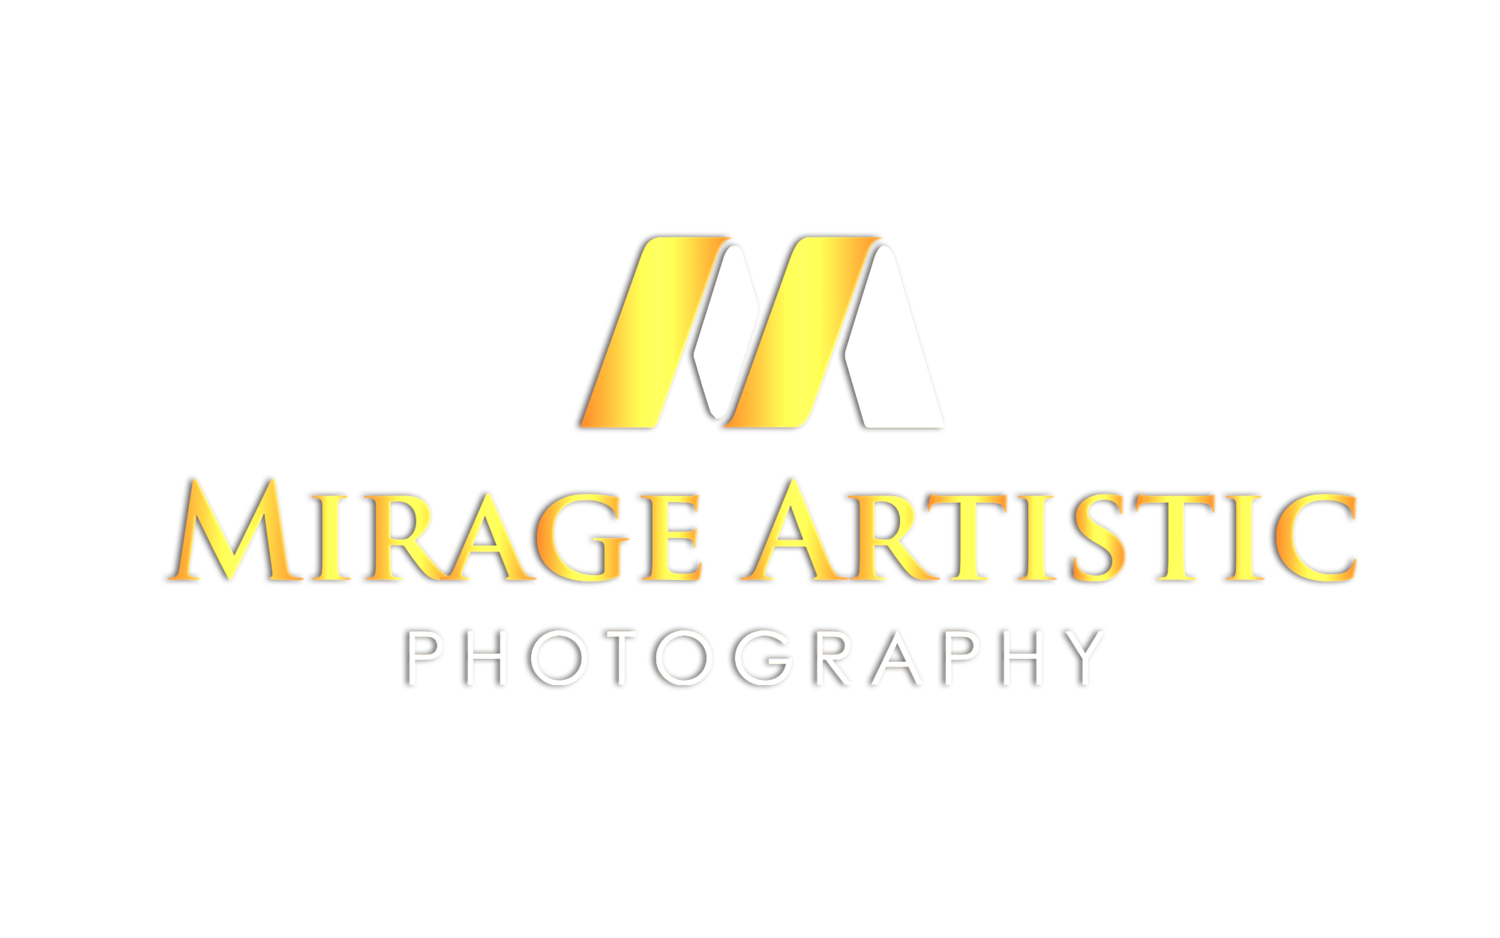 Mirage Artistic Photography